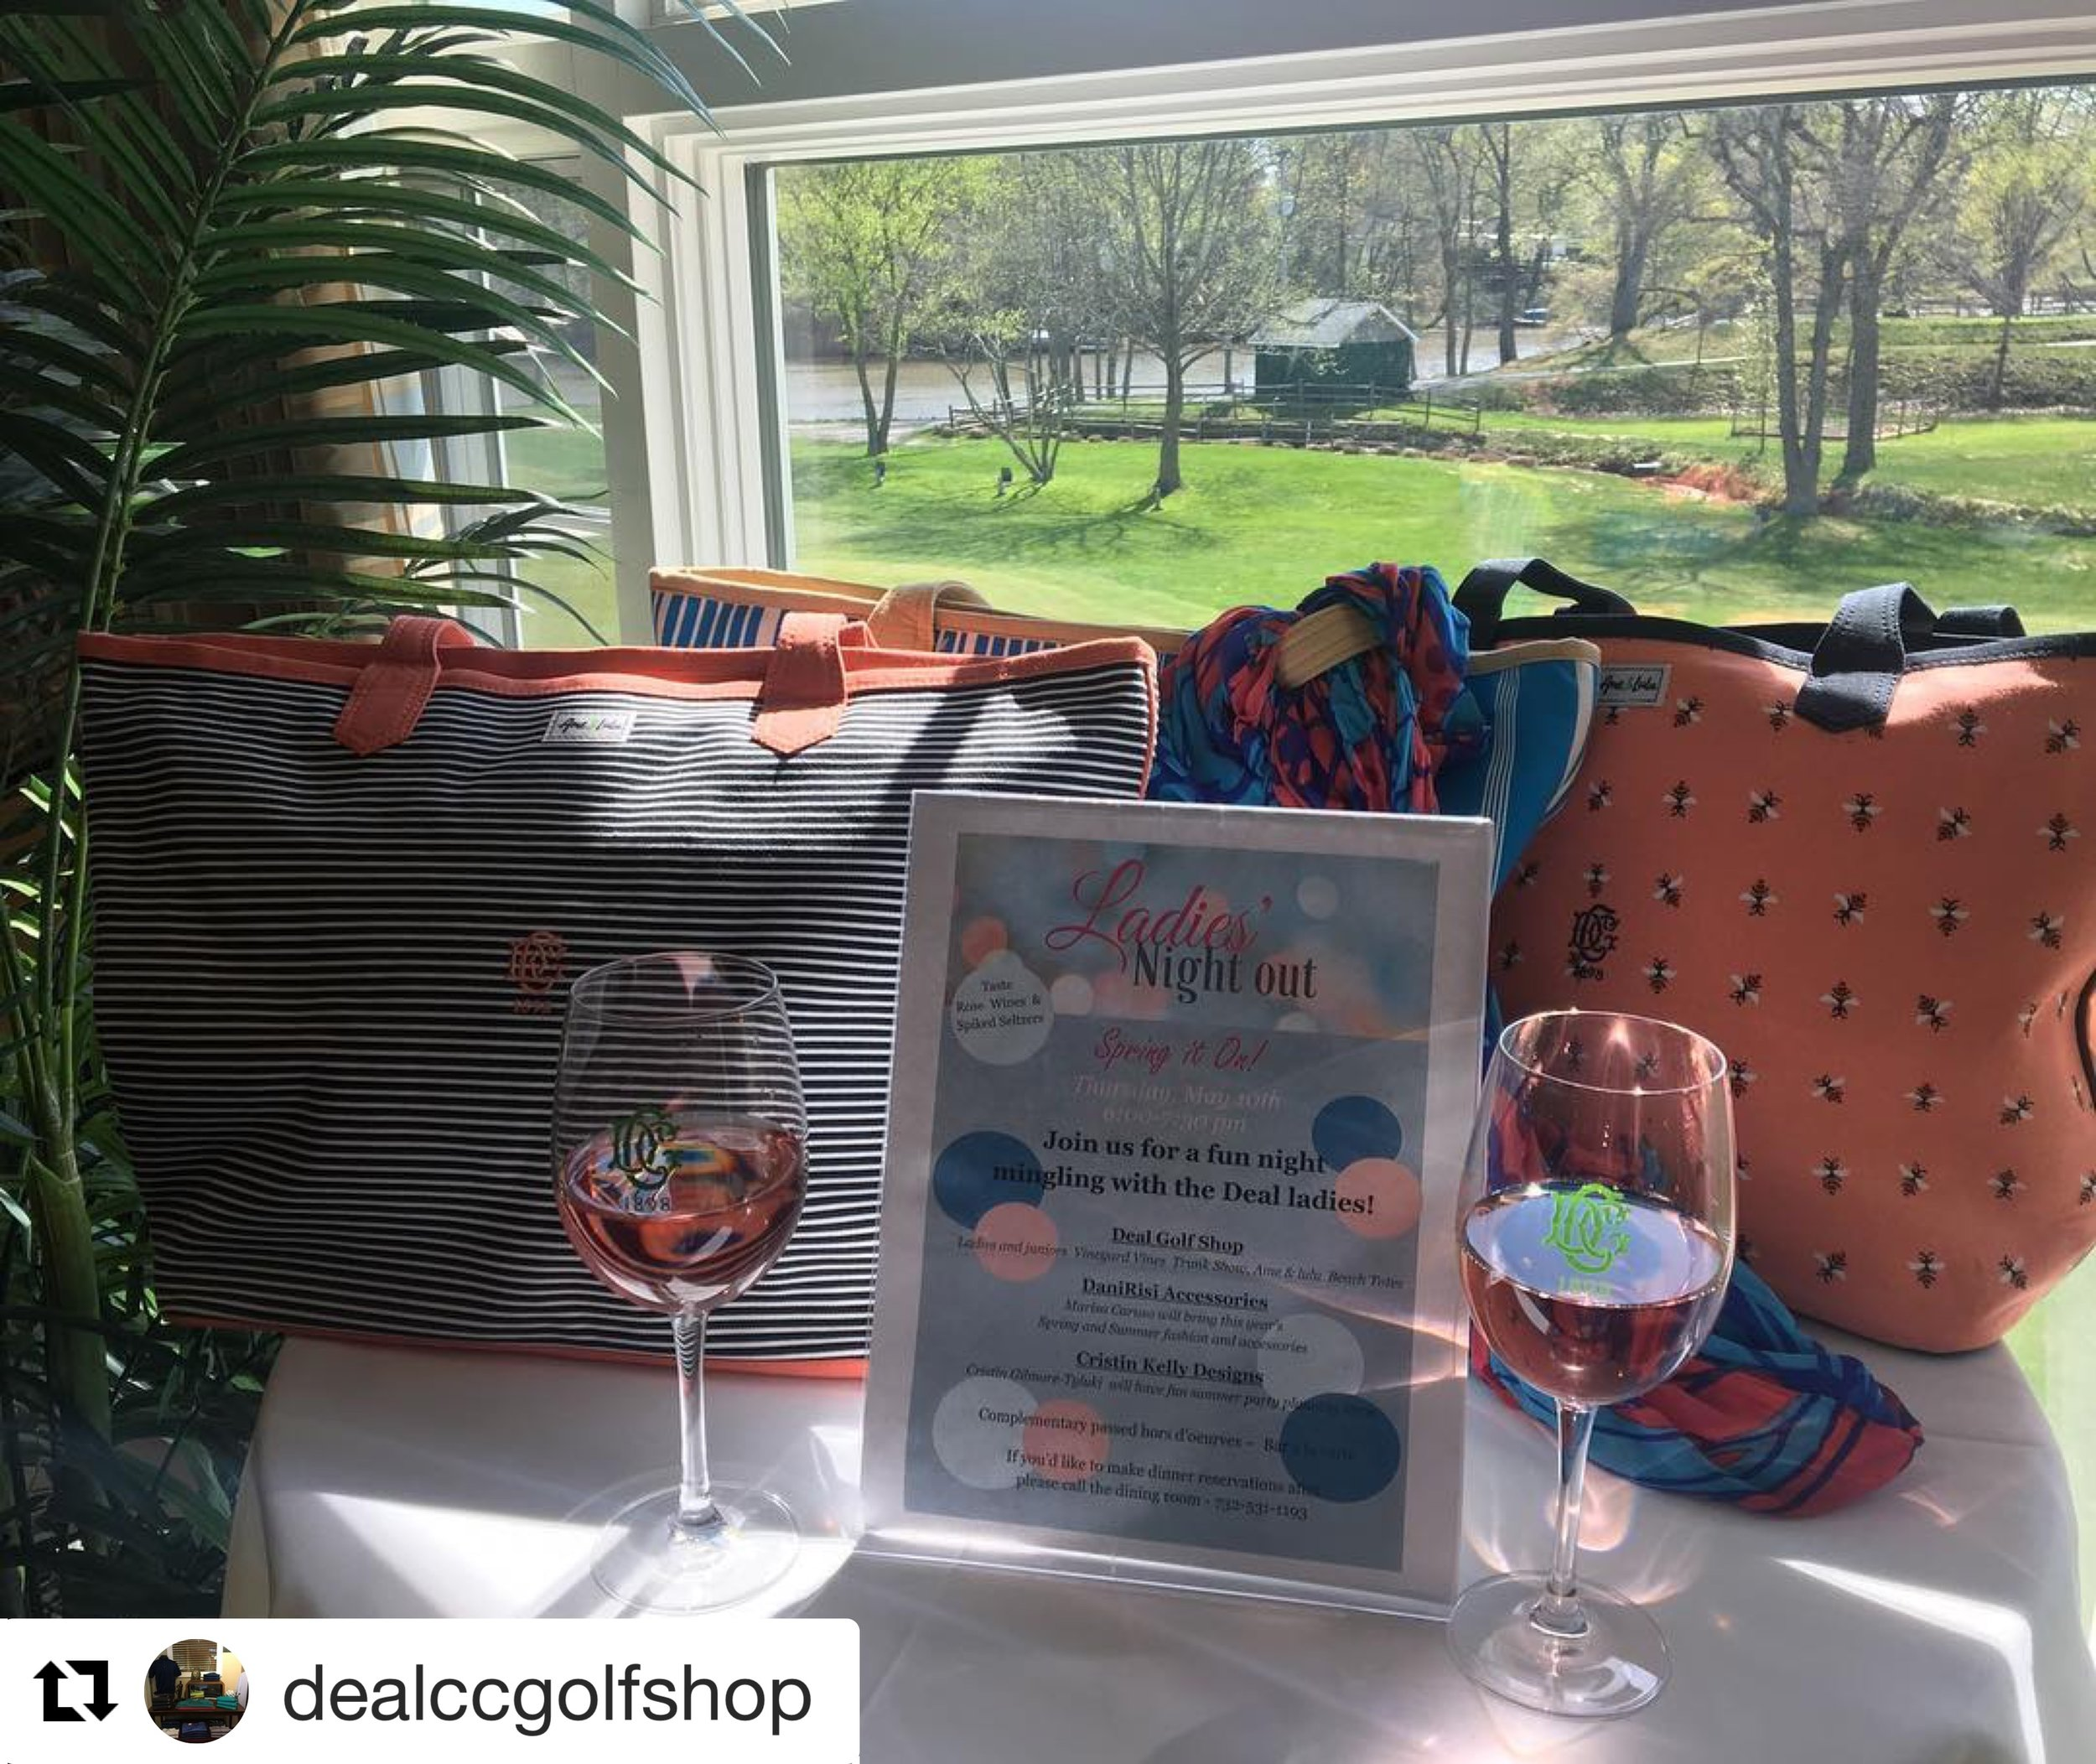 dealccgolfshop: Are you in for Ladies Night Out? Local vendors, DaniRisi Accessories and Cristin Kelly Designs will be featured and we'll bring vineyard vines golf and spiked seltzer's